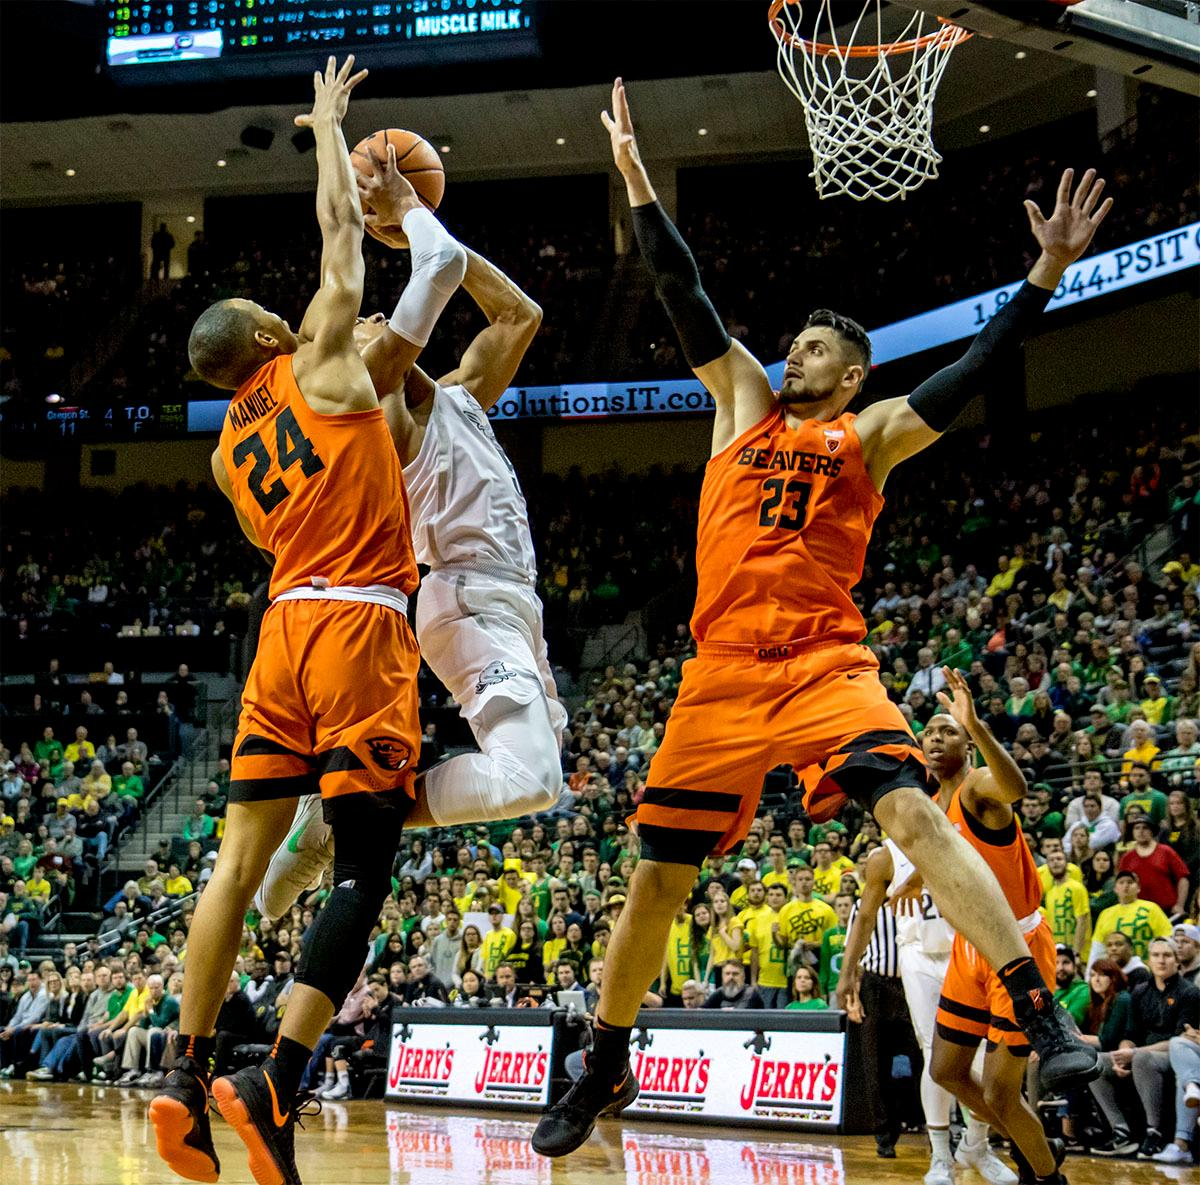 The Duck's Elijah Brown (#5) goes for a jump shot as the Beaver's Gligorije Rakocevic (#23) defends the basket. The Ducks defeated the Beavers in the civil war game, 66-57, at Matthew Knight Arena on Saturday night. Elijah Brown scored a game high of 20 points with 18 of the points coming in the first half, Paul White added 17 points. The Ducks are now 14-7 overall and 4-4 in conference play. The Ducks will next face California on Thursday Feb. 1 at 6:00 p.m. Photo by August Frank, Oregon News Lab